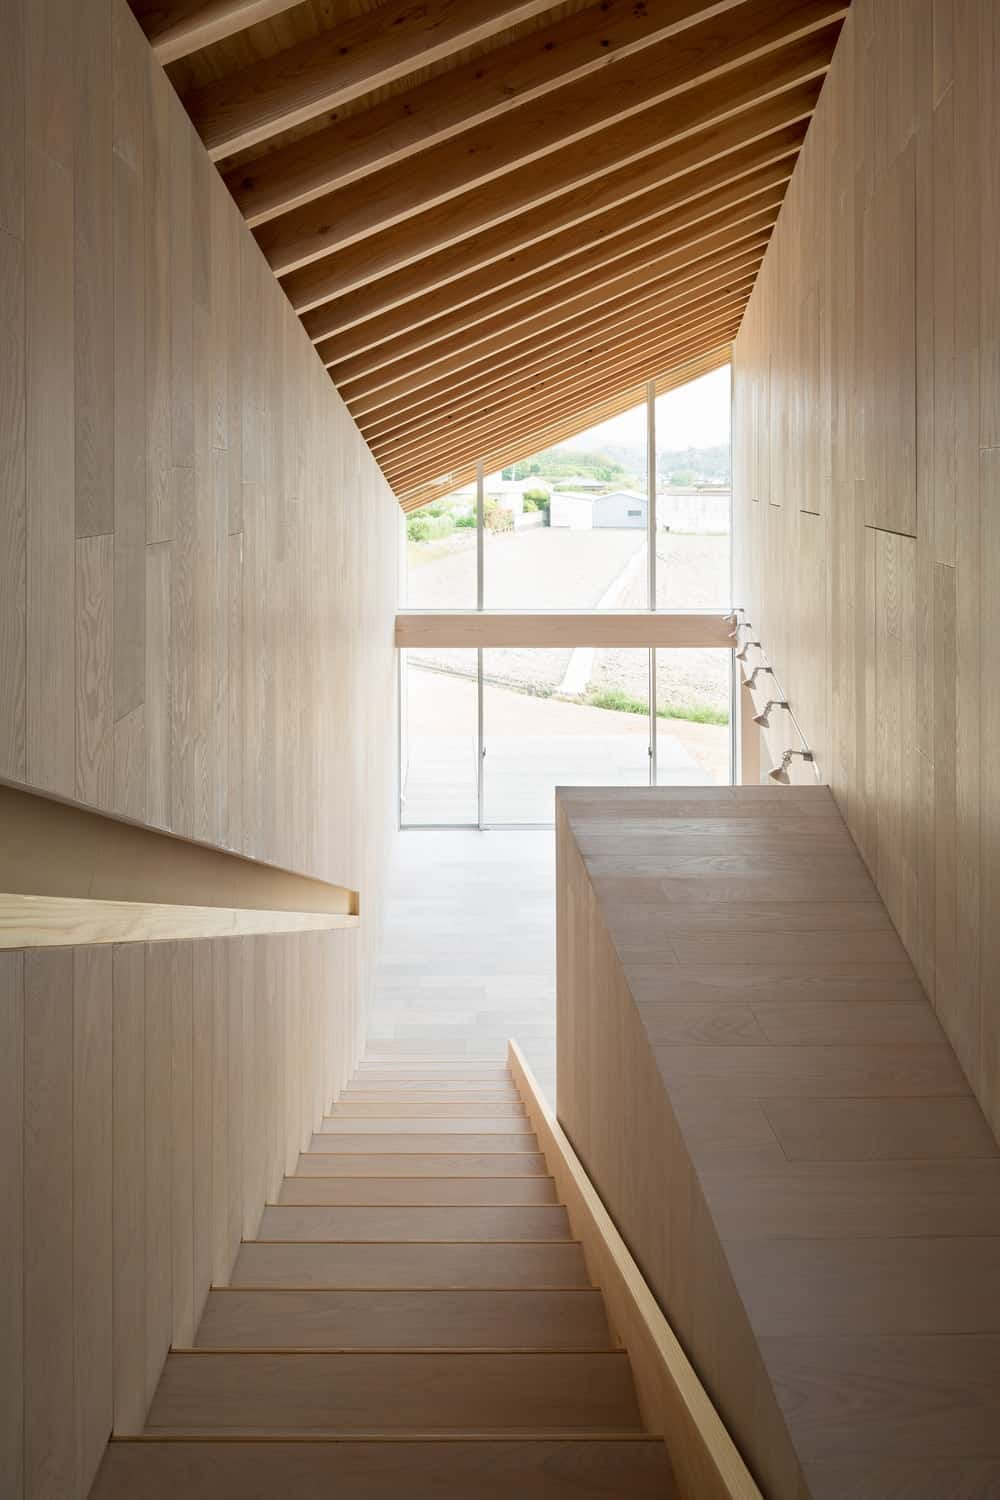 This is a look at down the staircase with the same wooden tone as the rest of the interiors. It has a wall depression that works as the banisters.